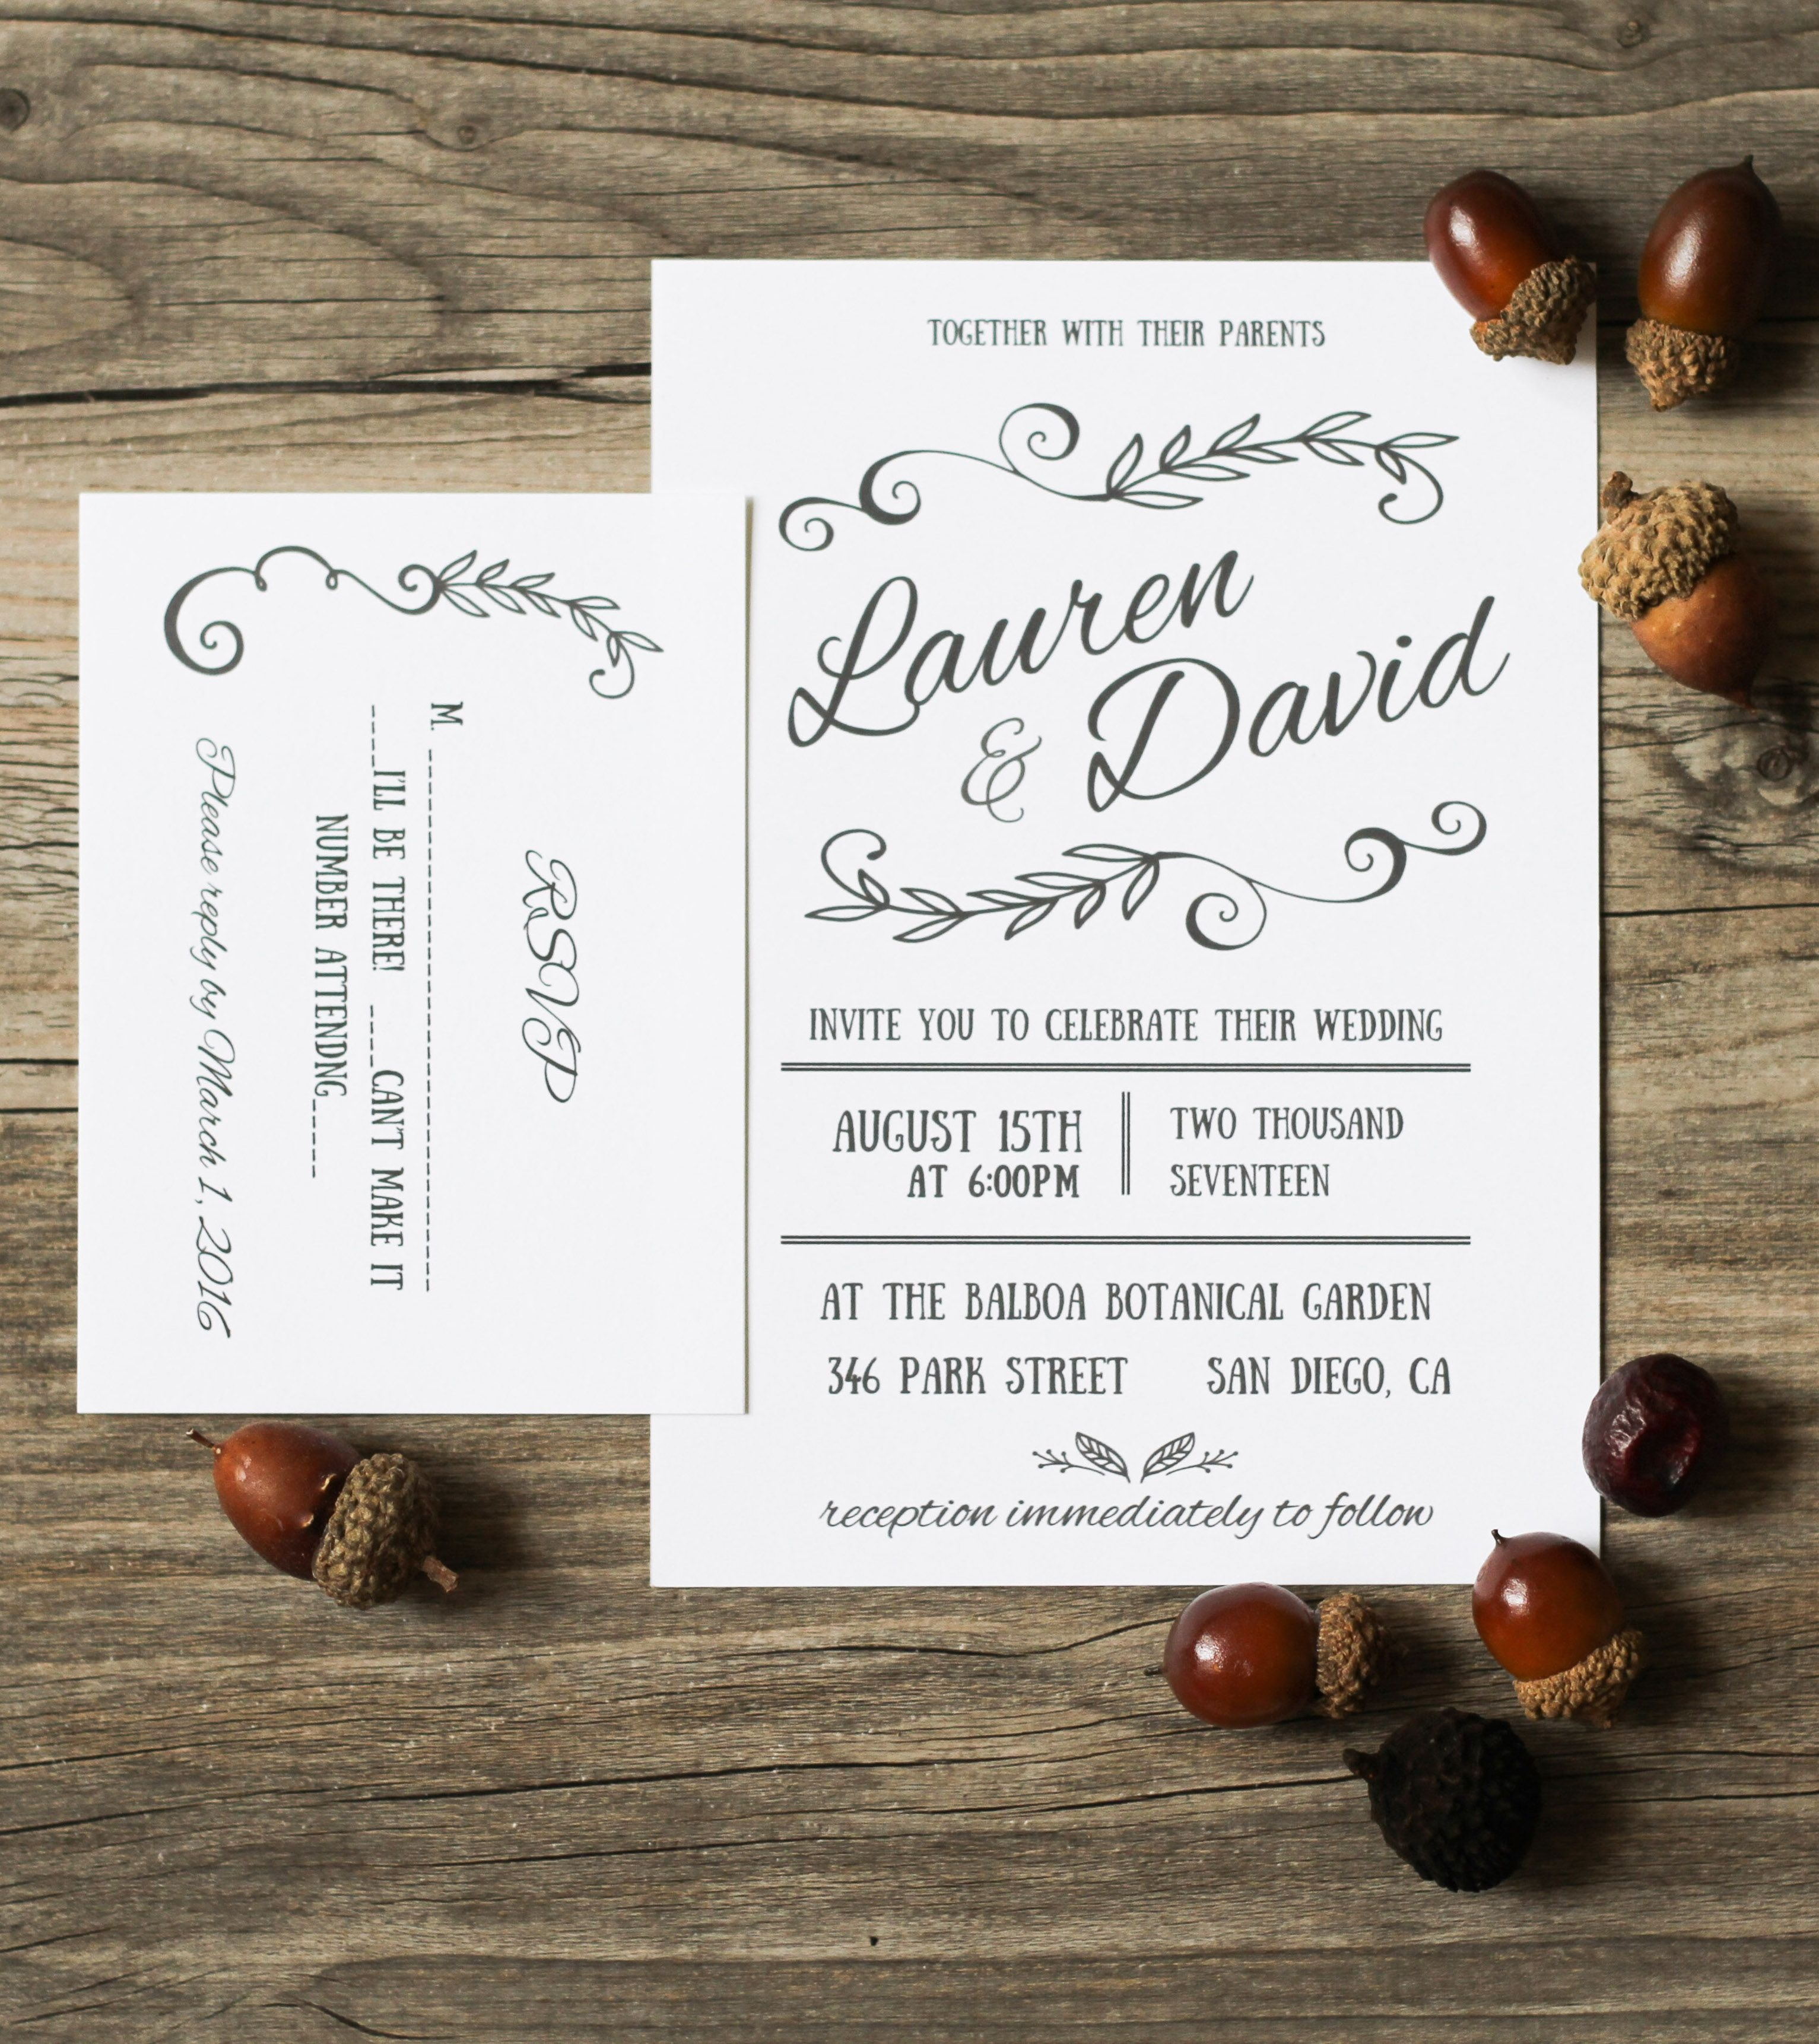 Diy Microsoft Word Invitation Templates That You Can Make At Home - Free Printable Wedding Invitation Templates For Microsoft Word